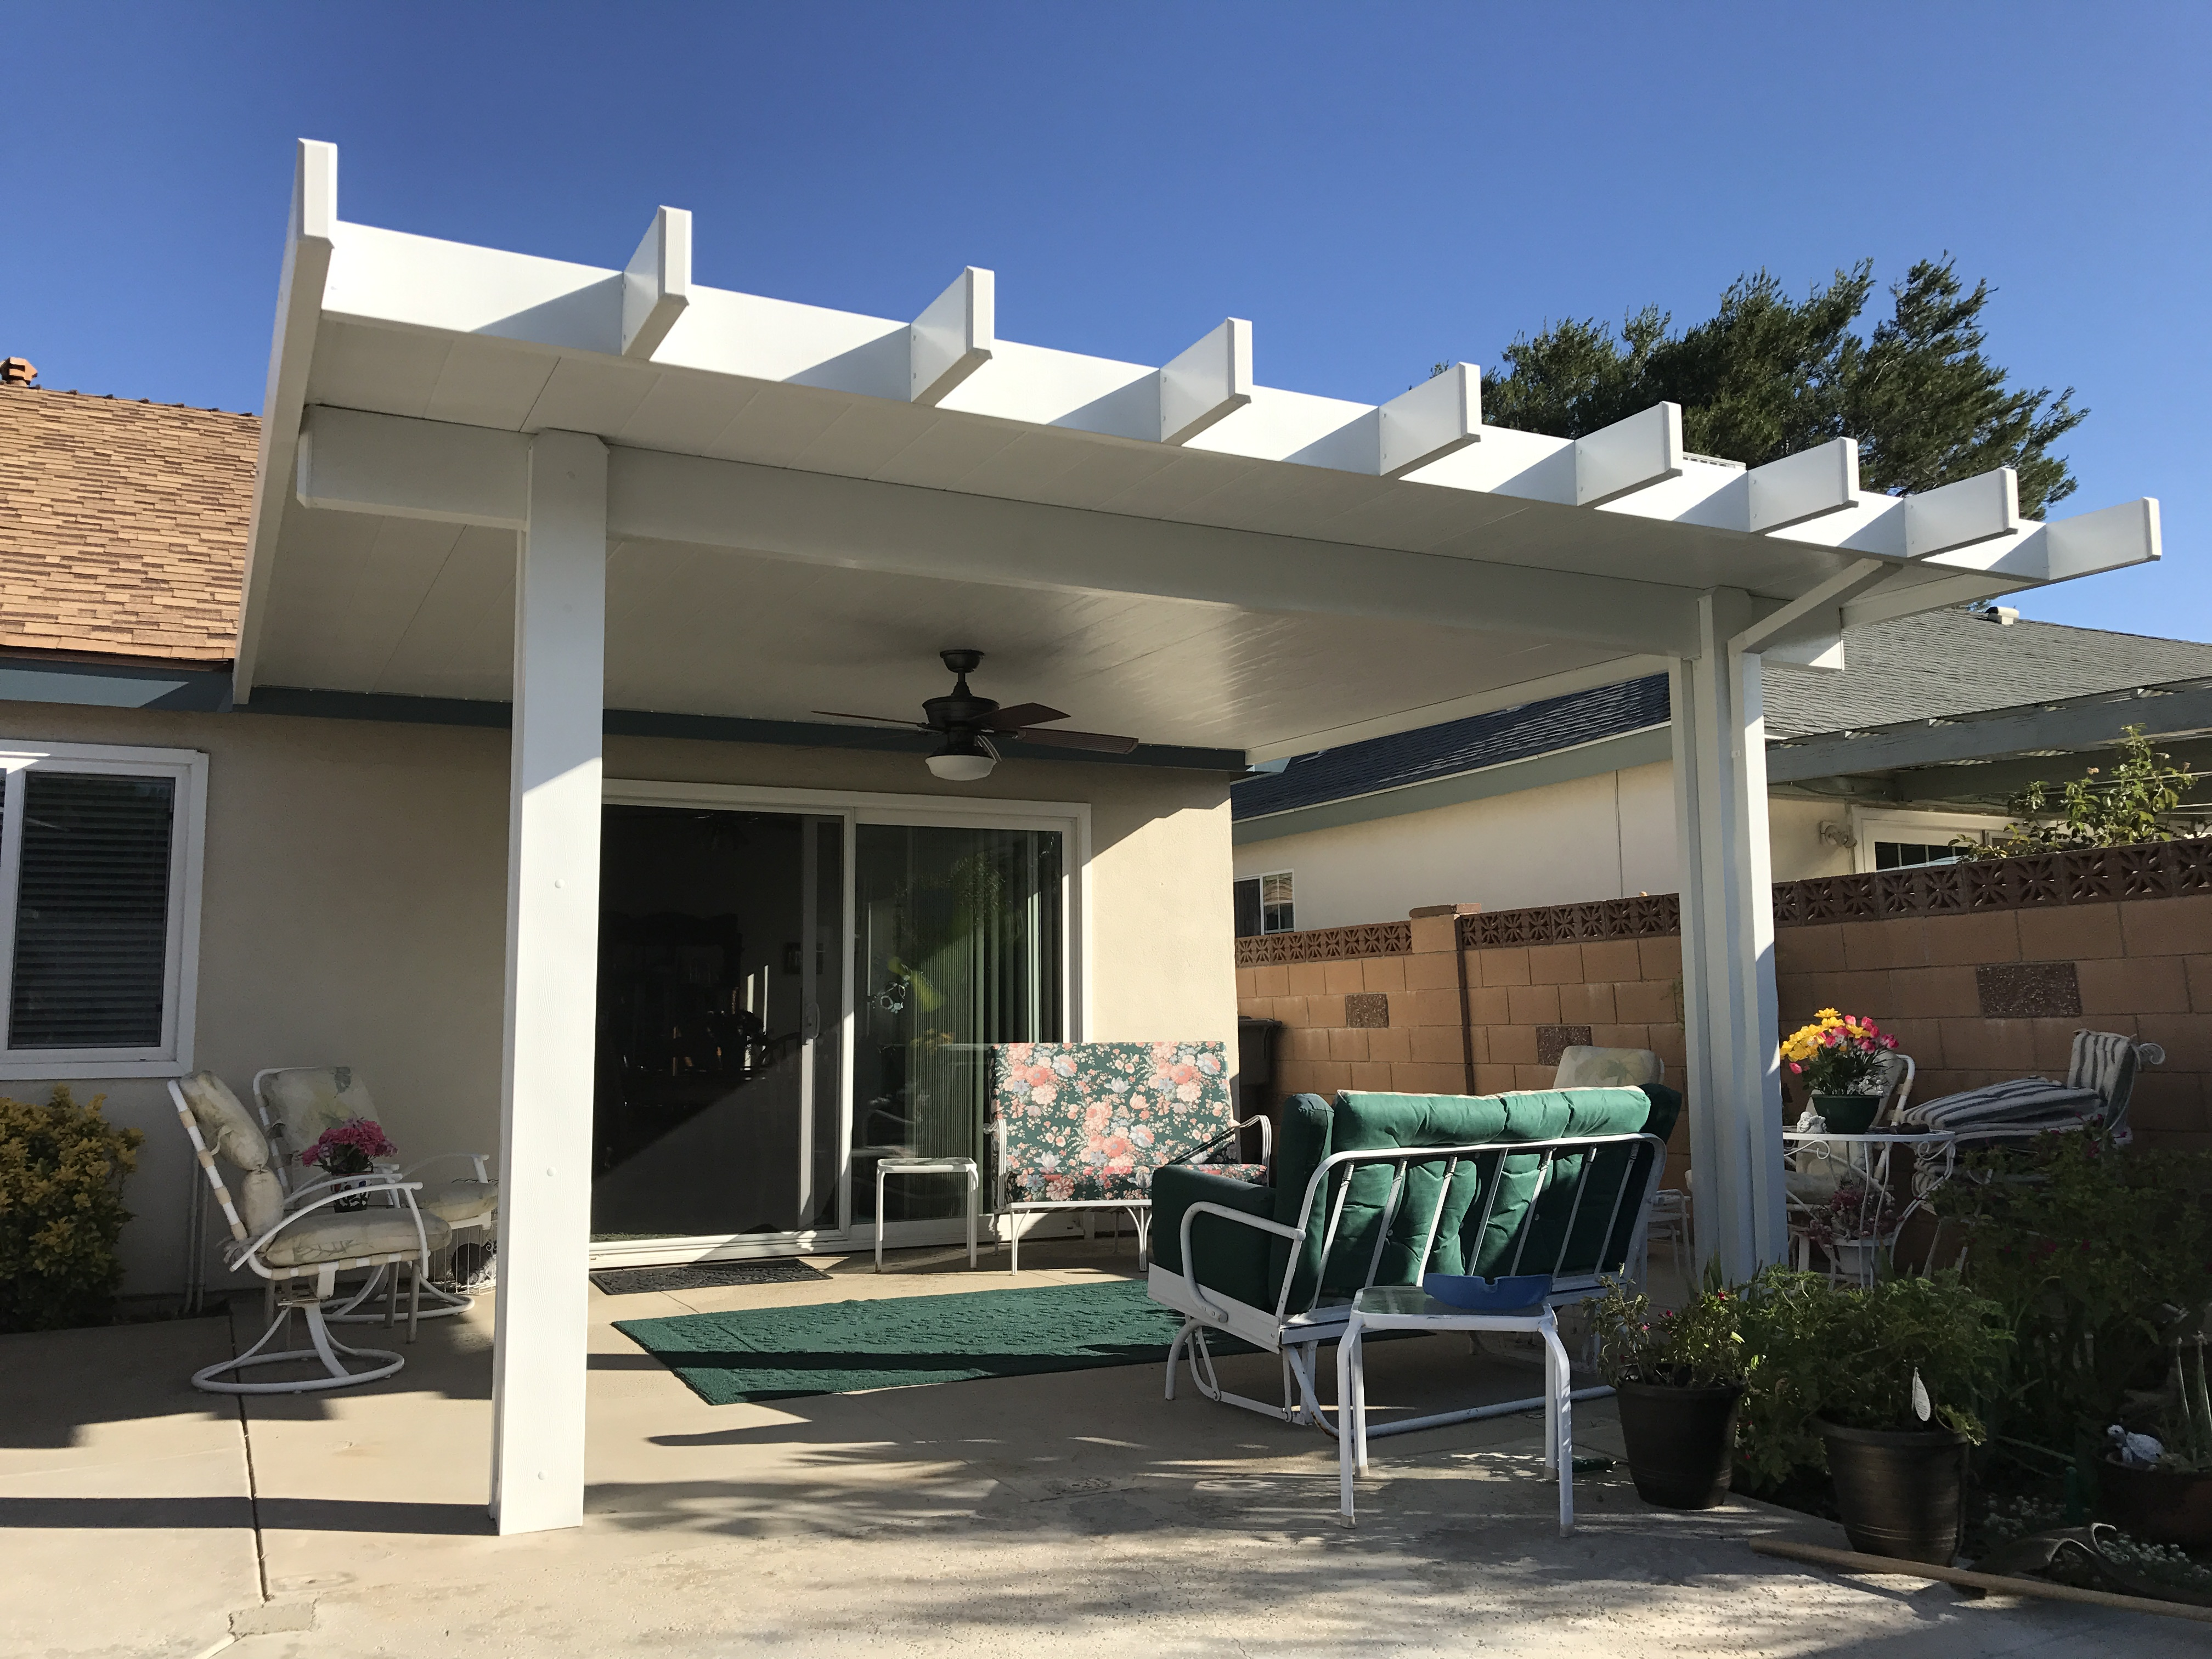 Alumawood Insulated Roofed Patio Cover Patiocovered Com